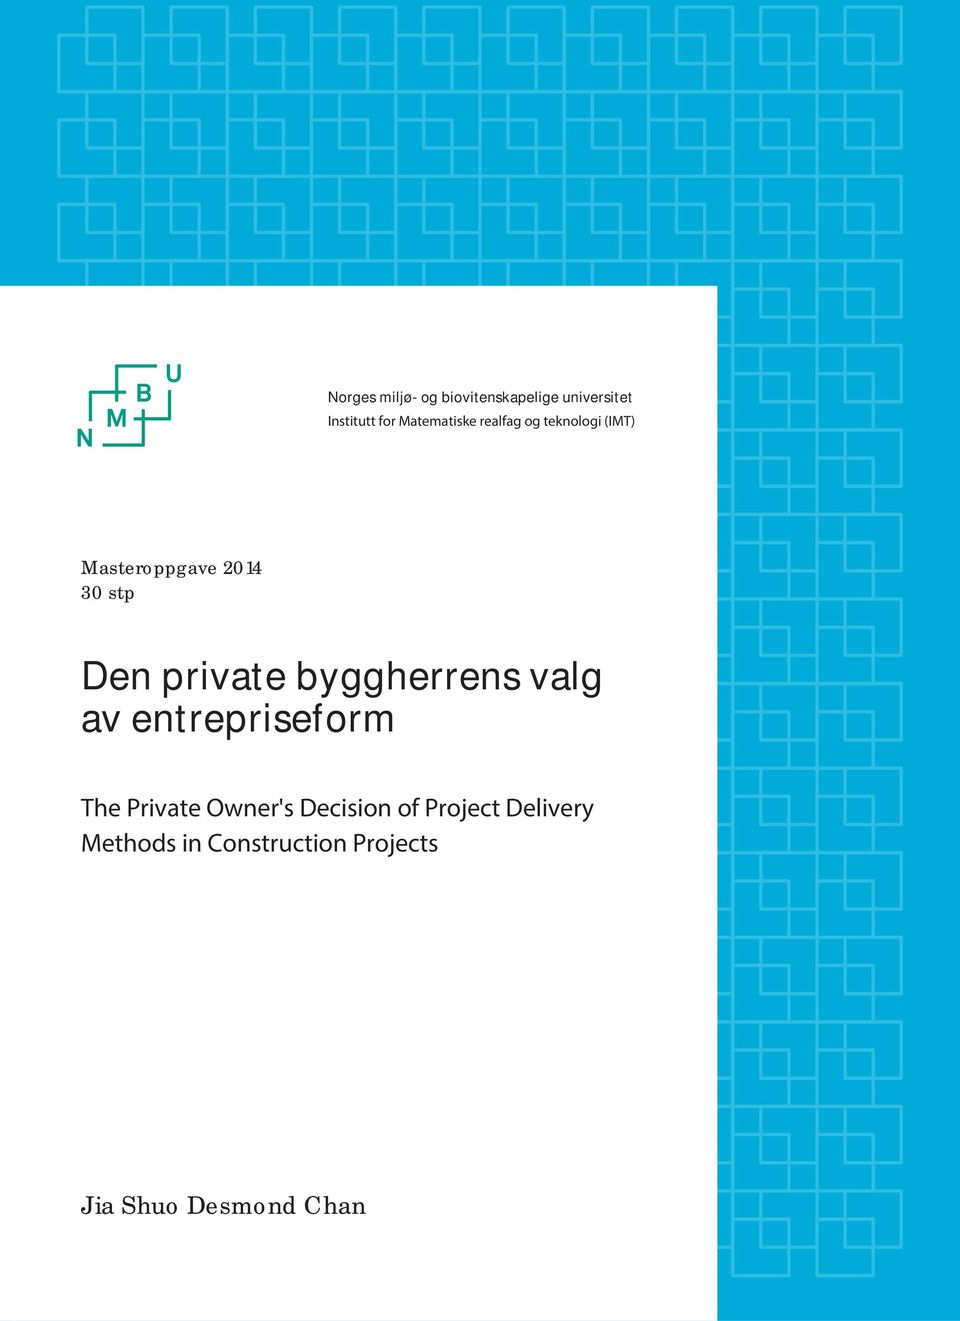 private byggherrens valg av entrepriseform The Private Owner's